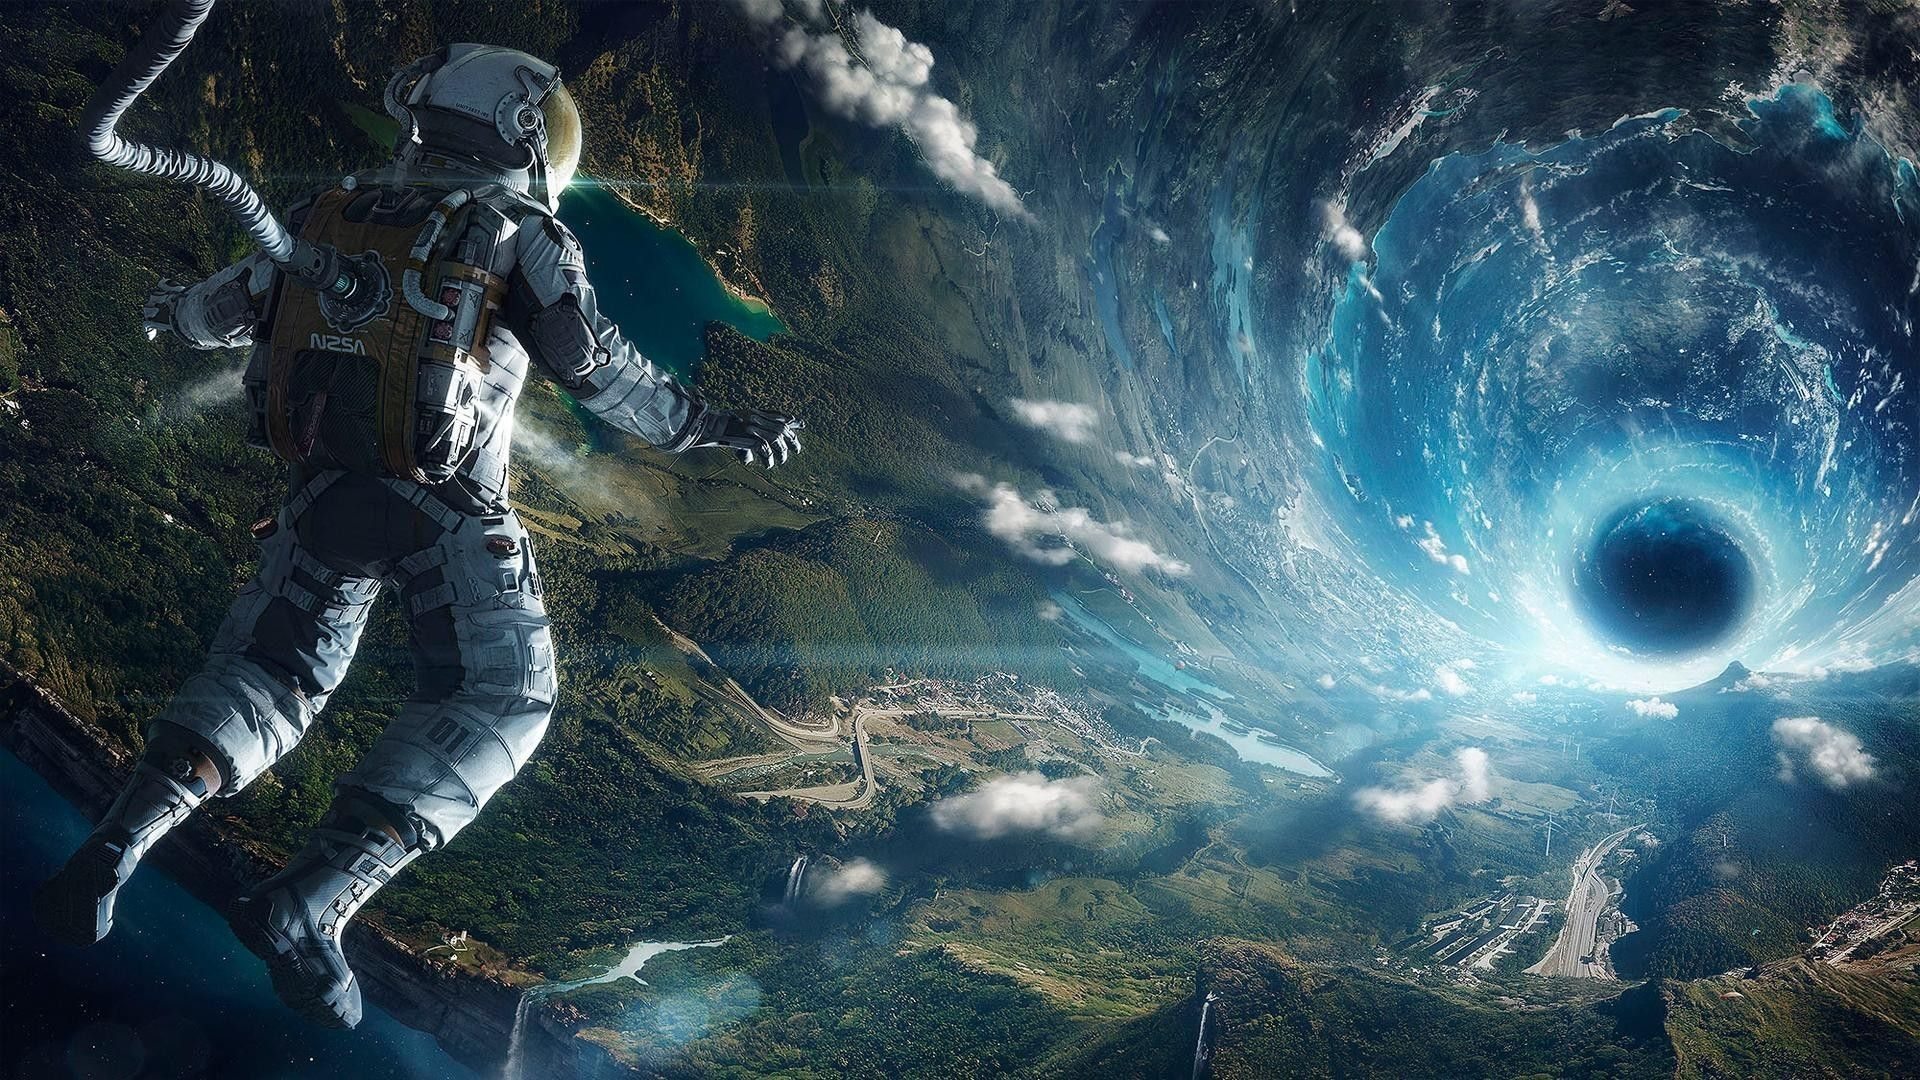 Black Hole Wallpaper Space Wallpapers Space Illustration